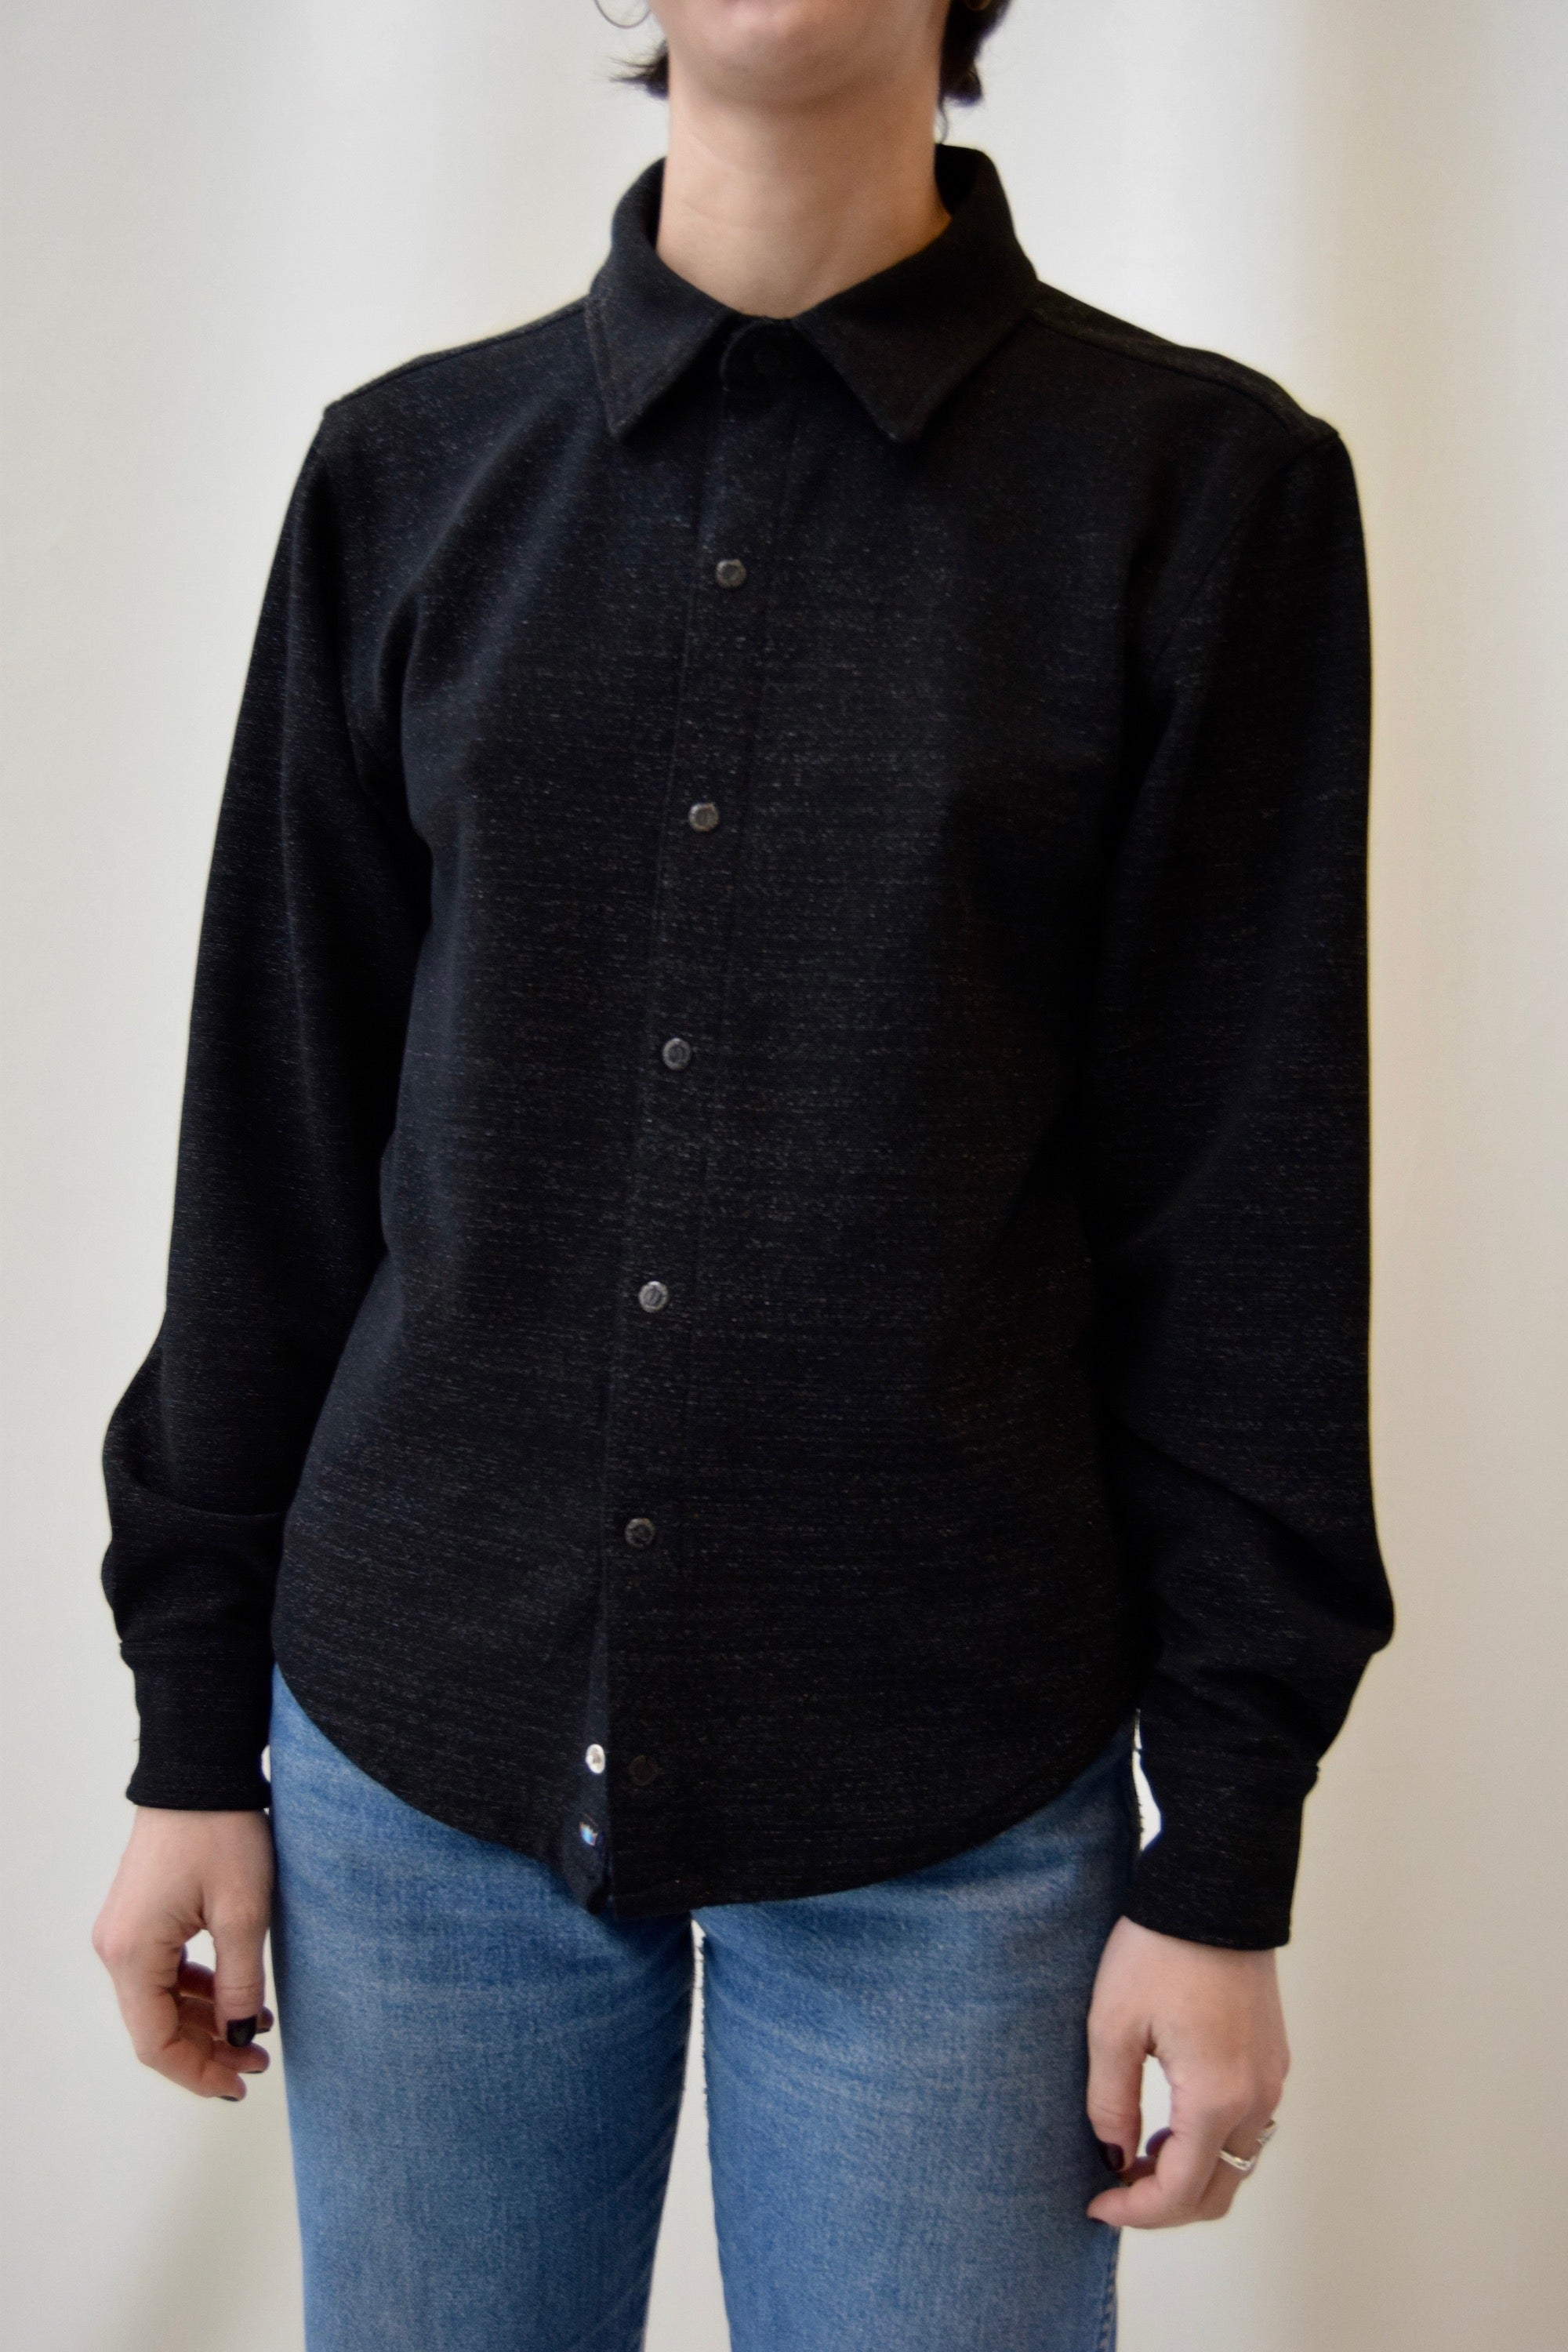 Vintage Todd Oldham Black Shimmer Long Sleeve Button Up FREE SHIPPING TO THE U.S.